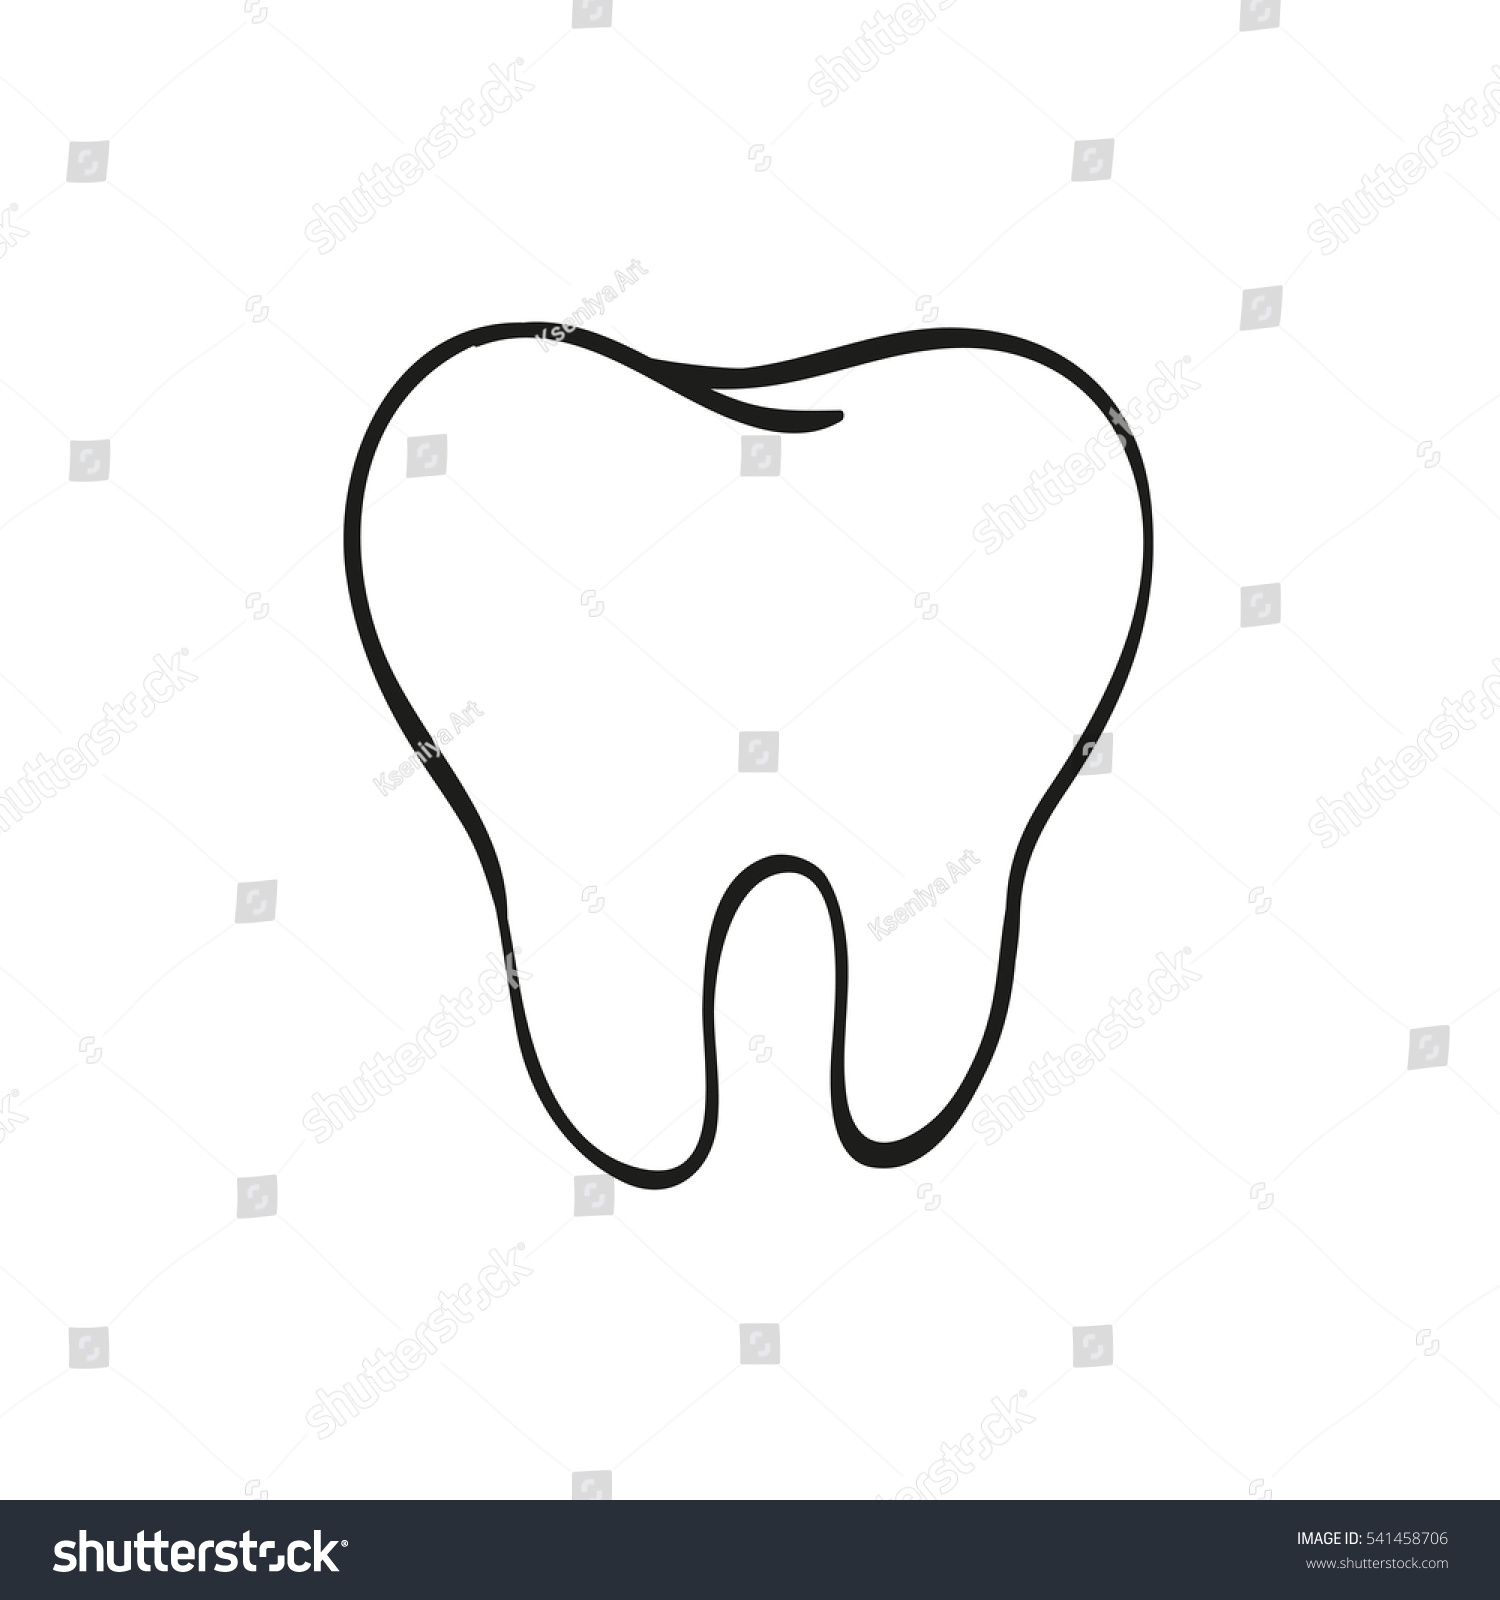 Tooth Line Drawing Tumblr : Tooth drawing illustration pixshark images